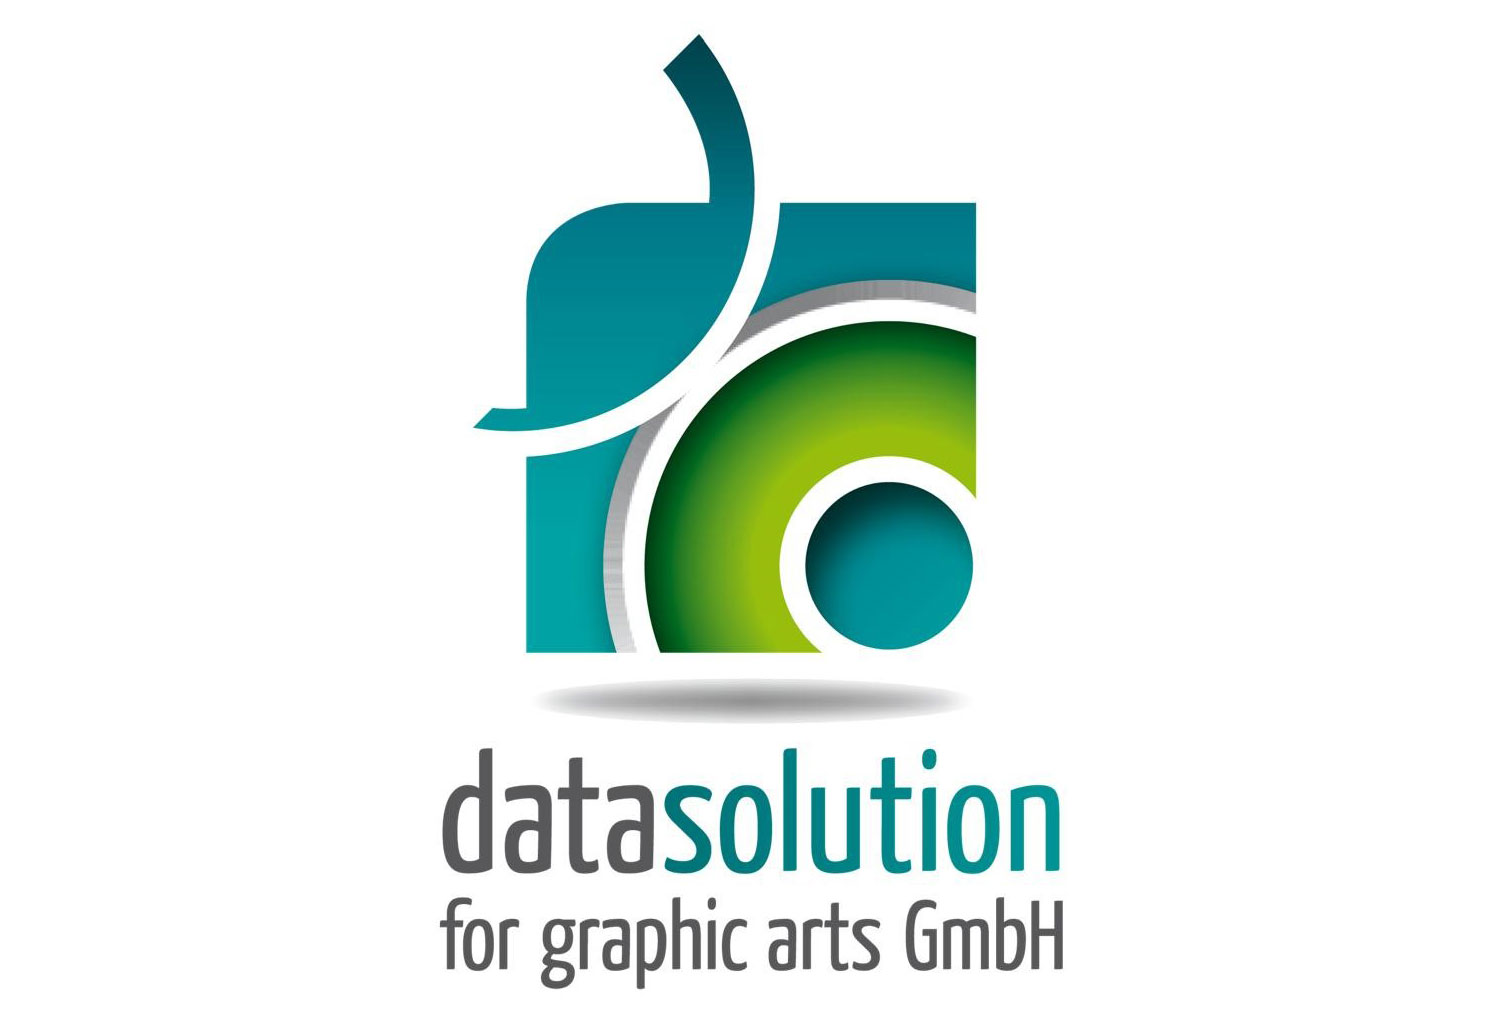 Datasolution for graphic arts Gmbh